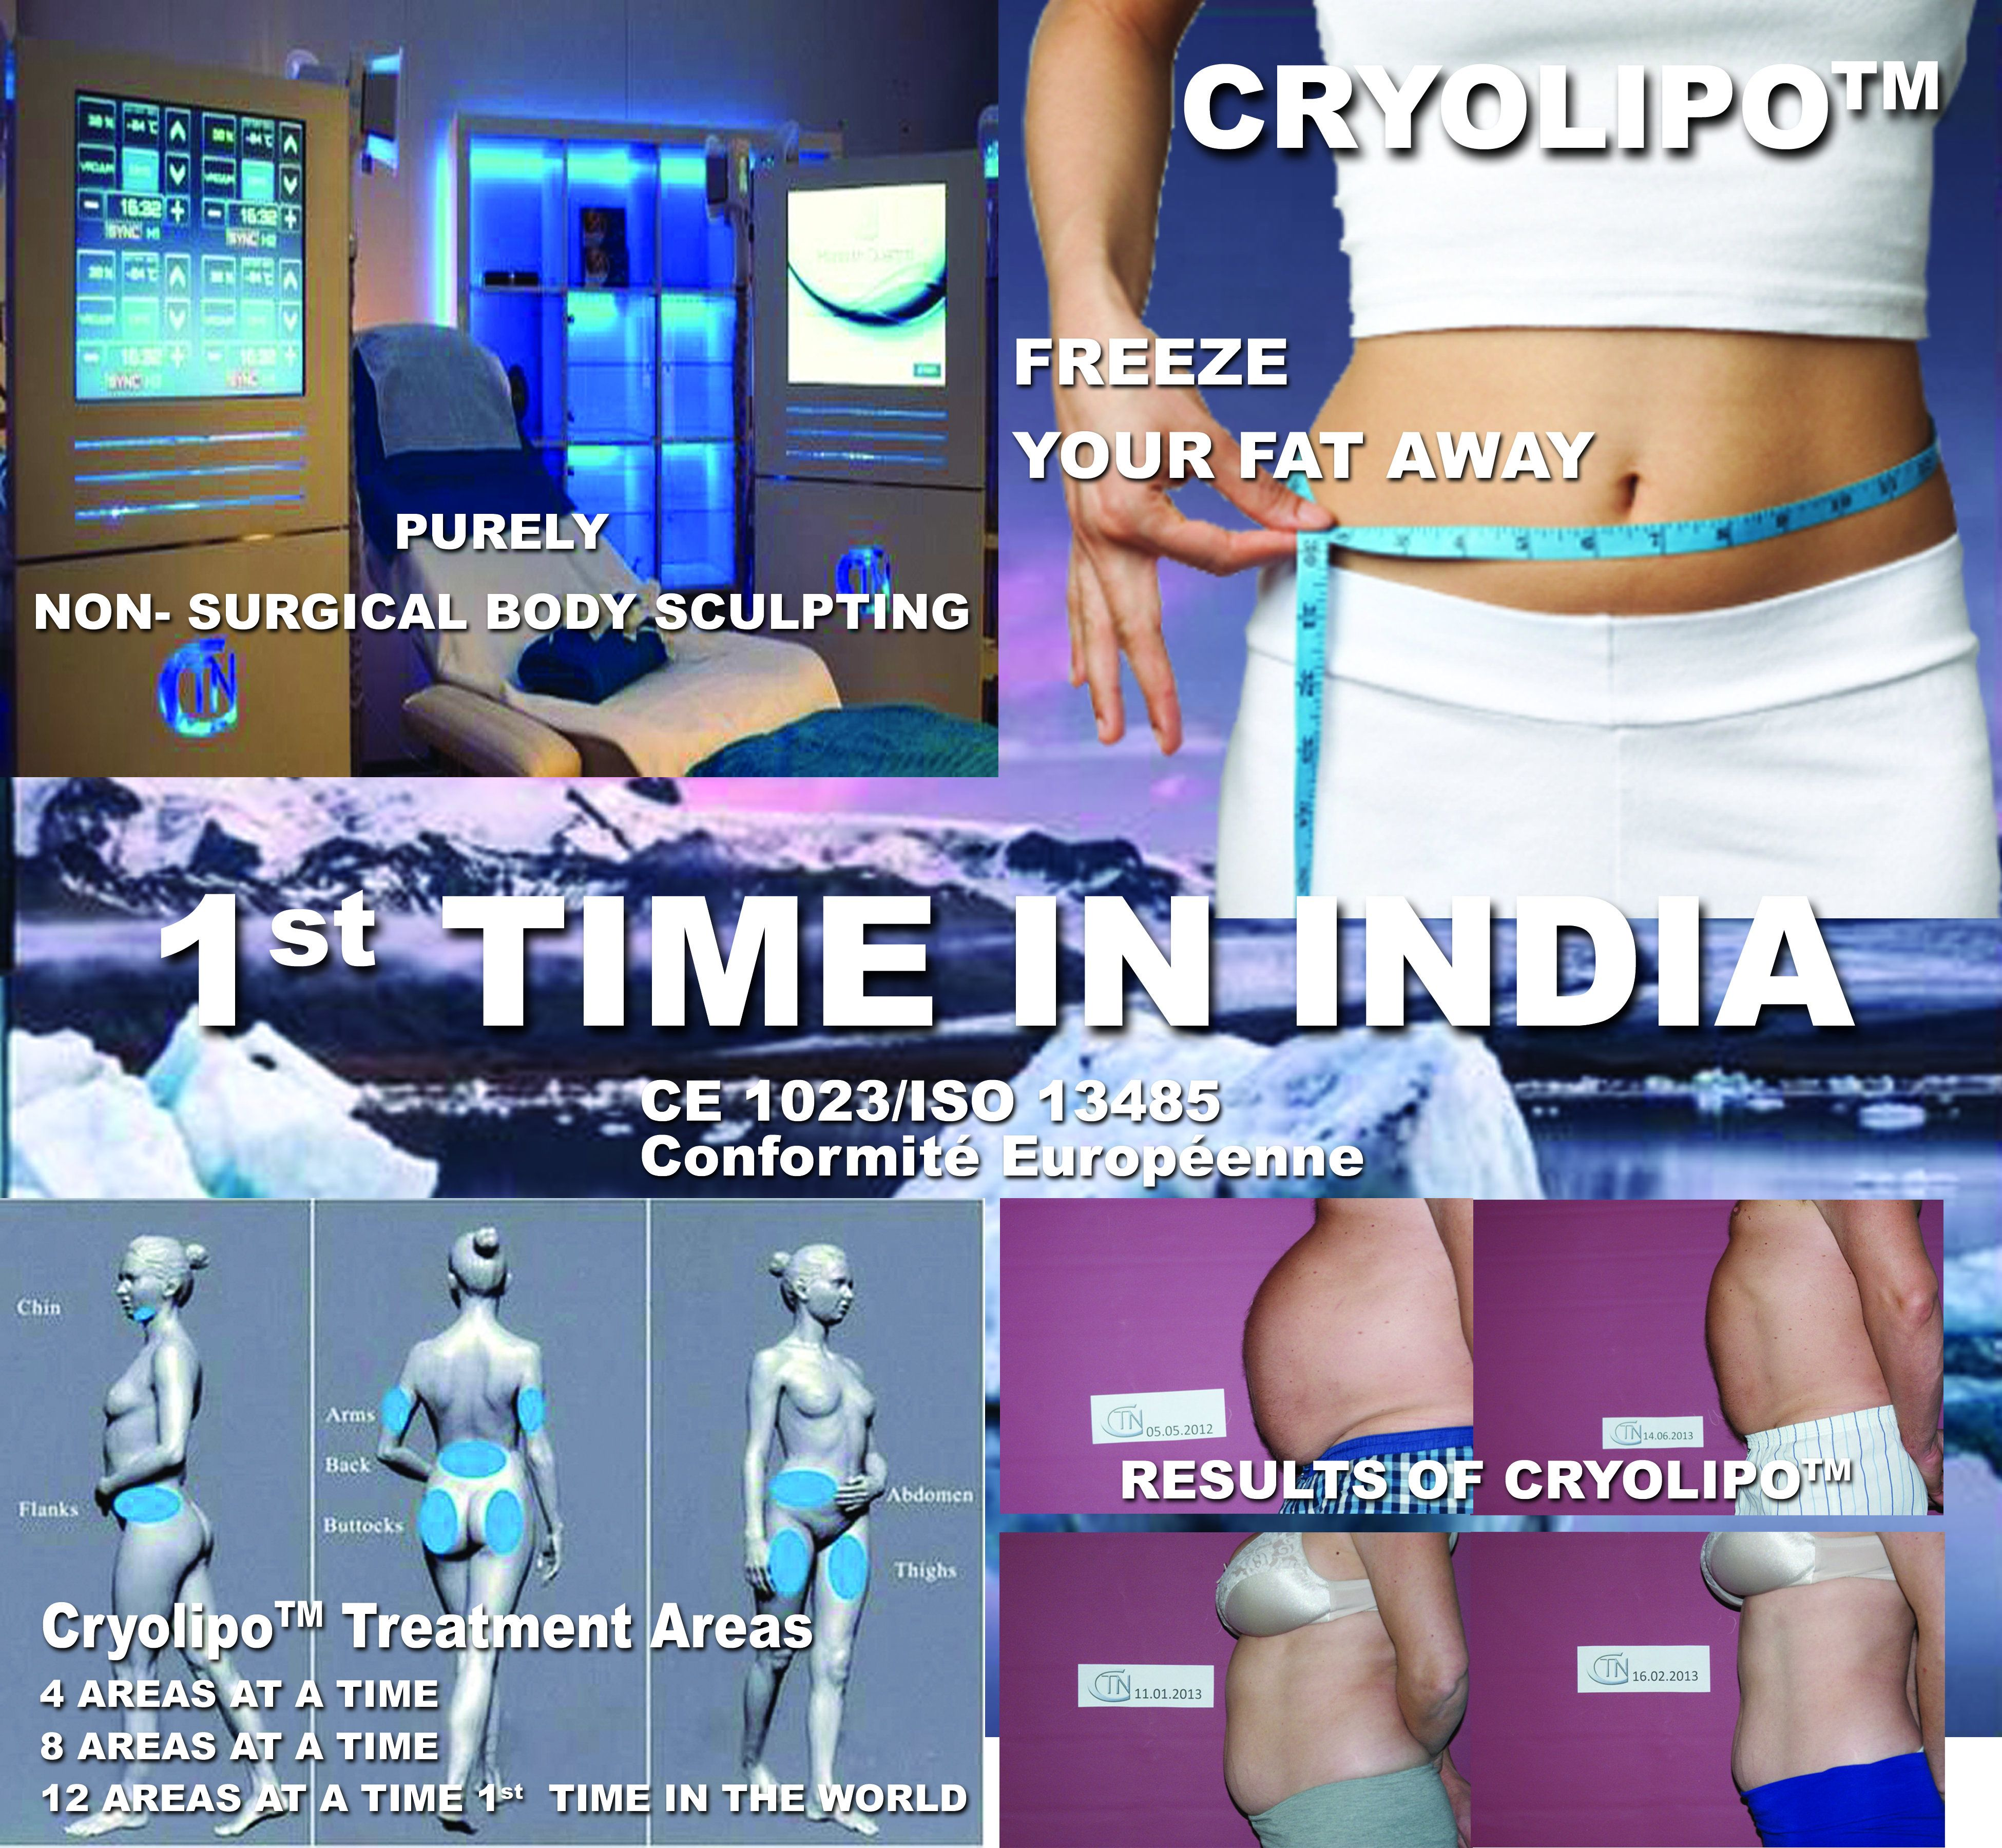 MicroCare - CTN Cryoclinic _ First time in India Non-Surgical Body Sculpting CTN Cryolipo- First time in India CE 1023/ISO 13485 Conformite Europeene